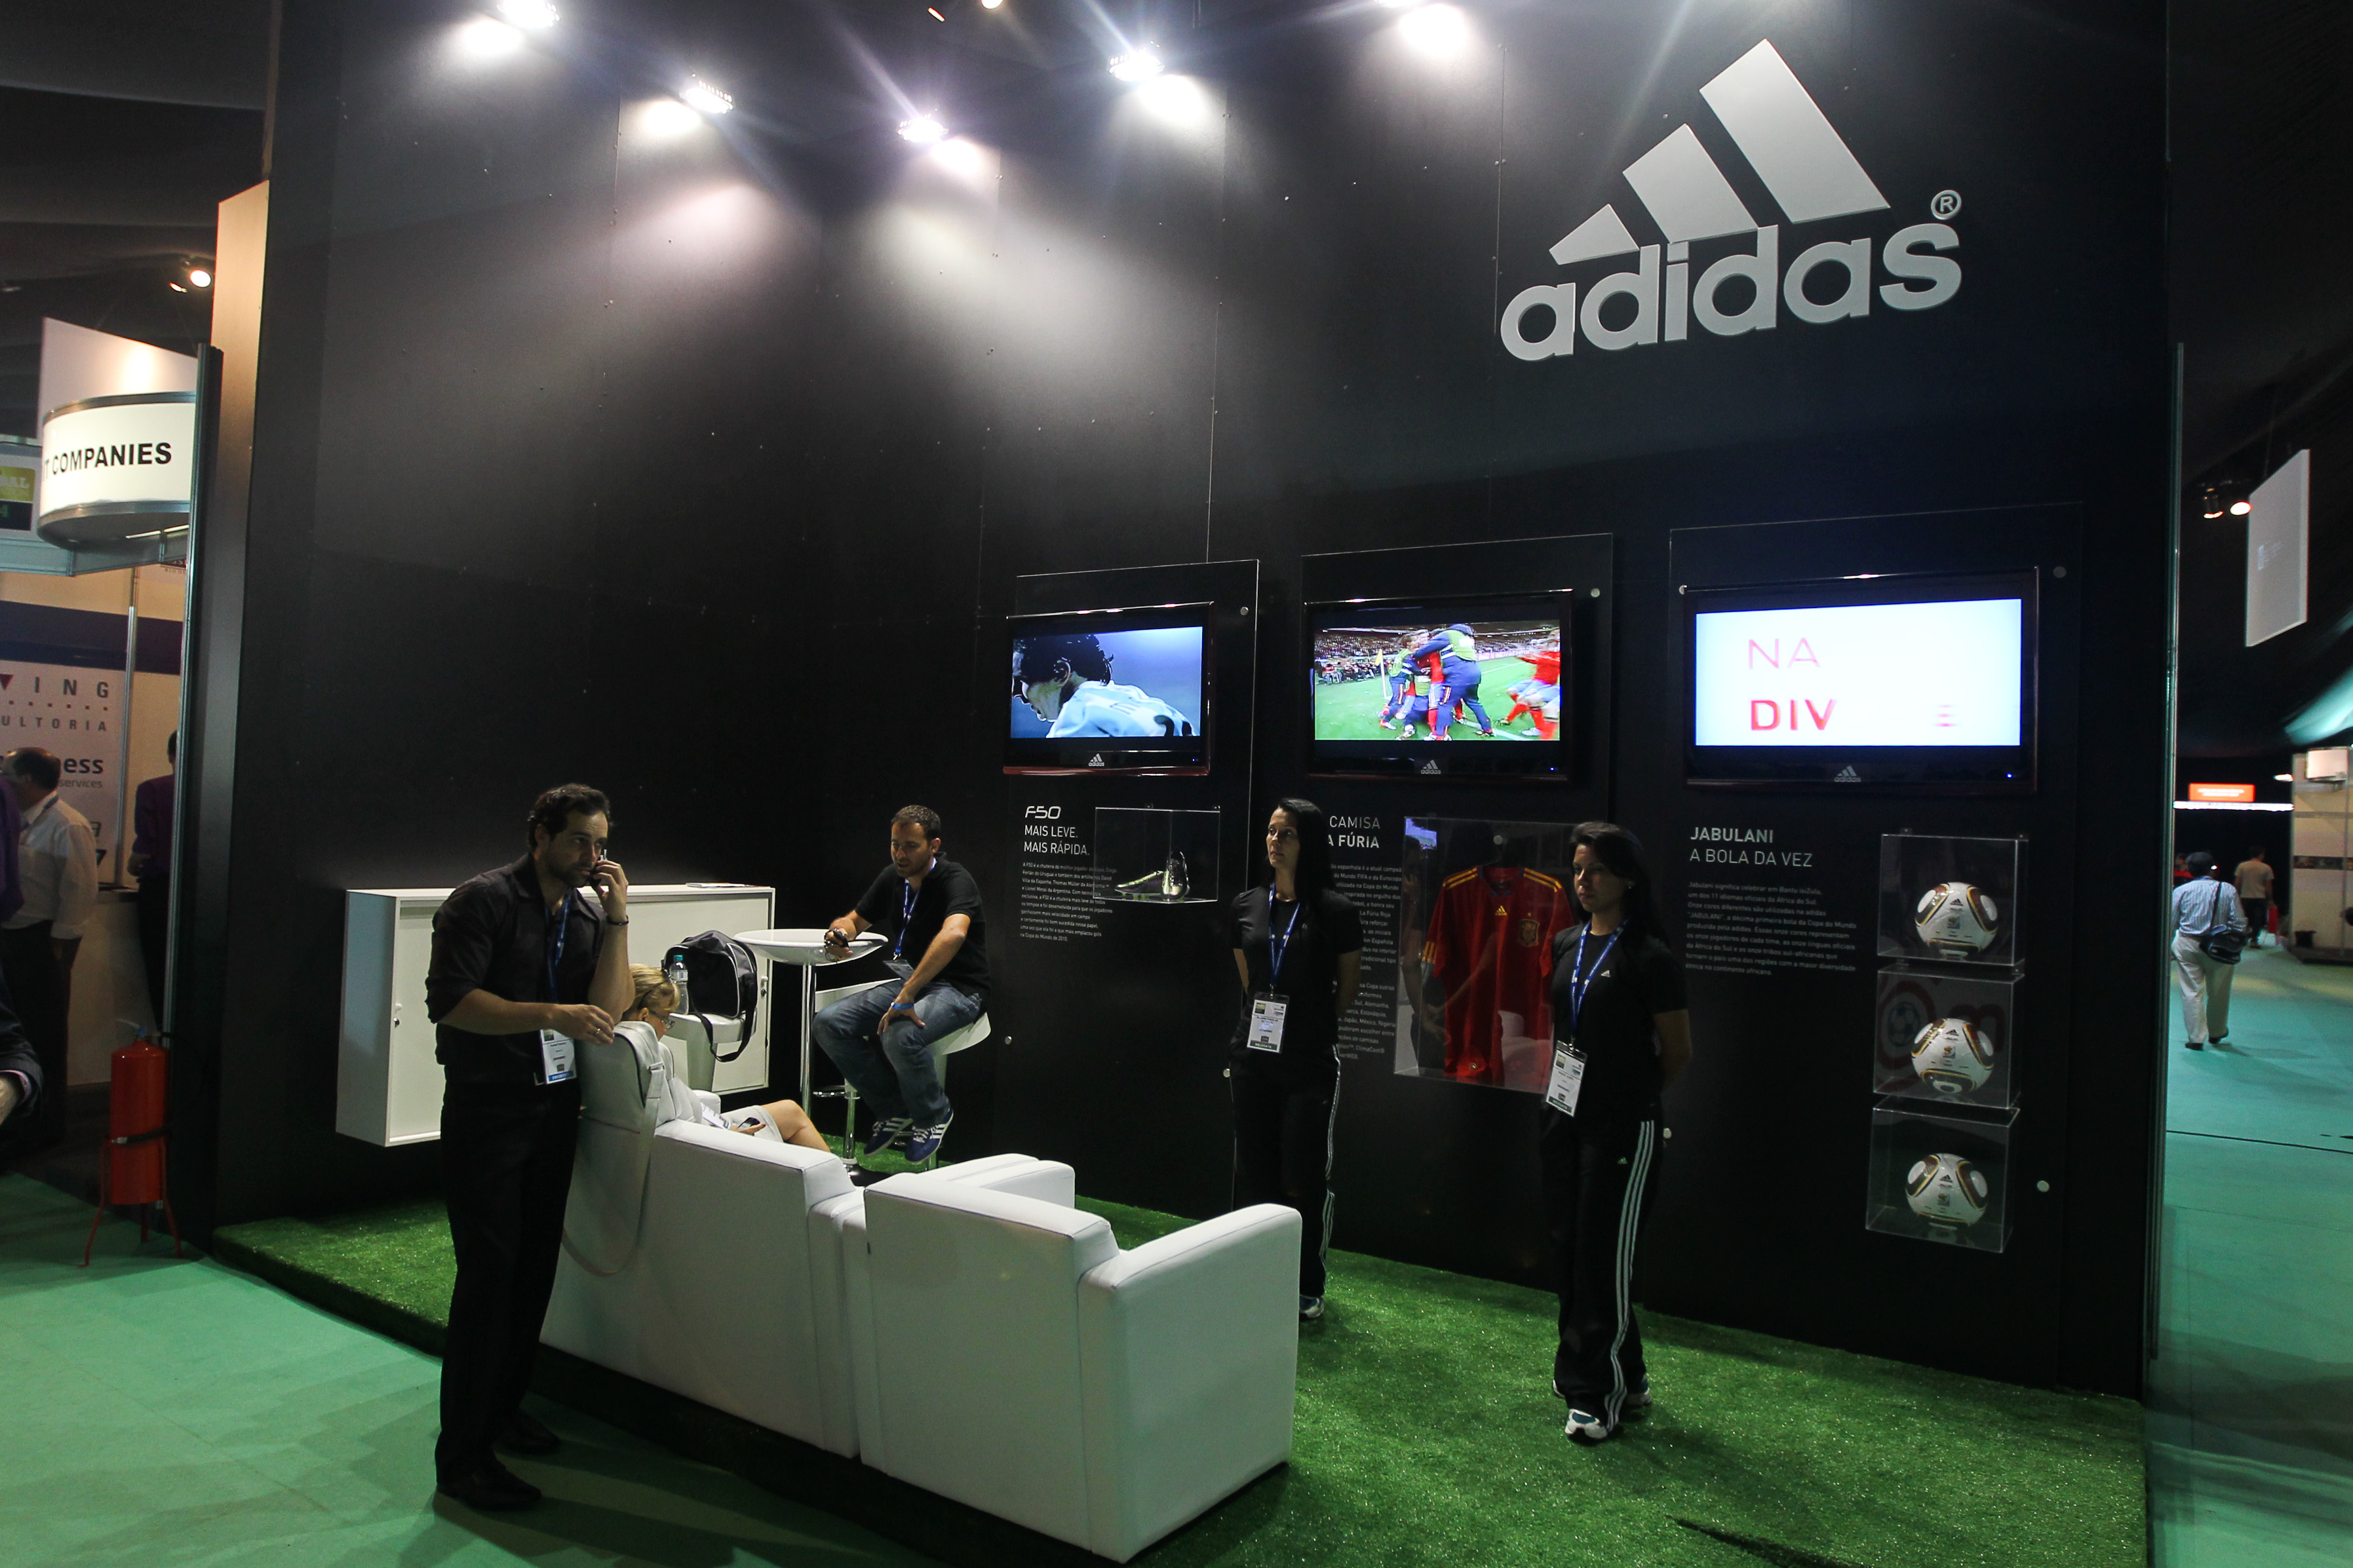 Exhibition Stand Wikipedia : File adidas stand g wikimedia commons